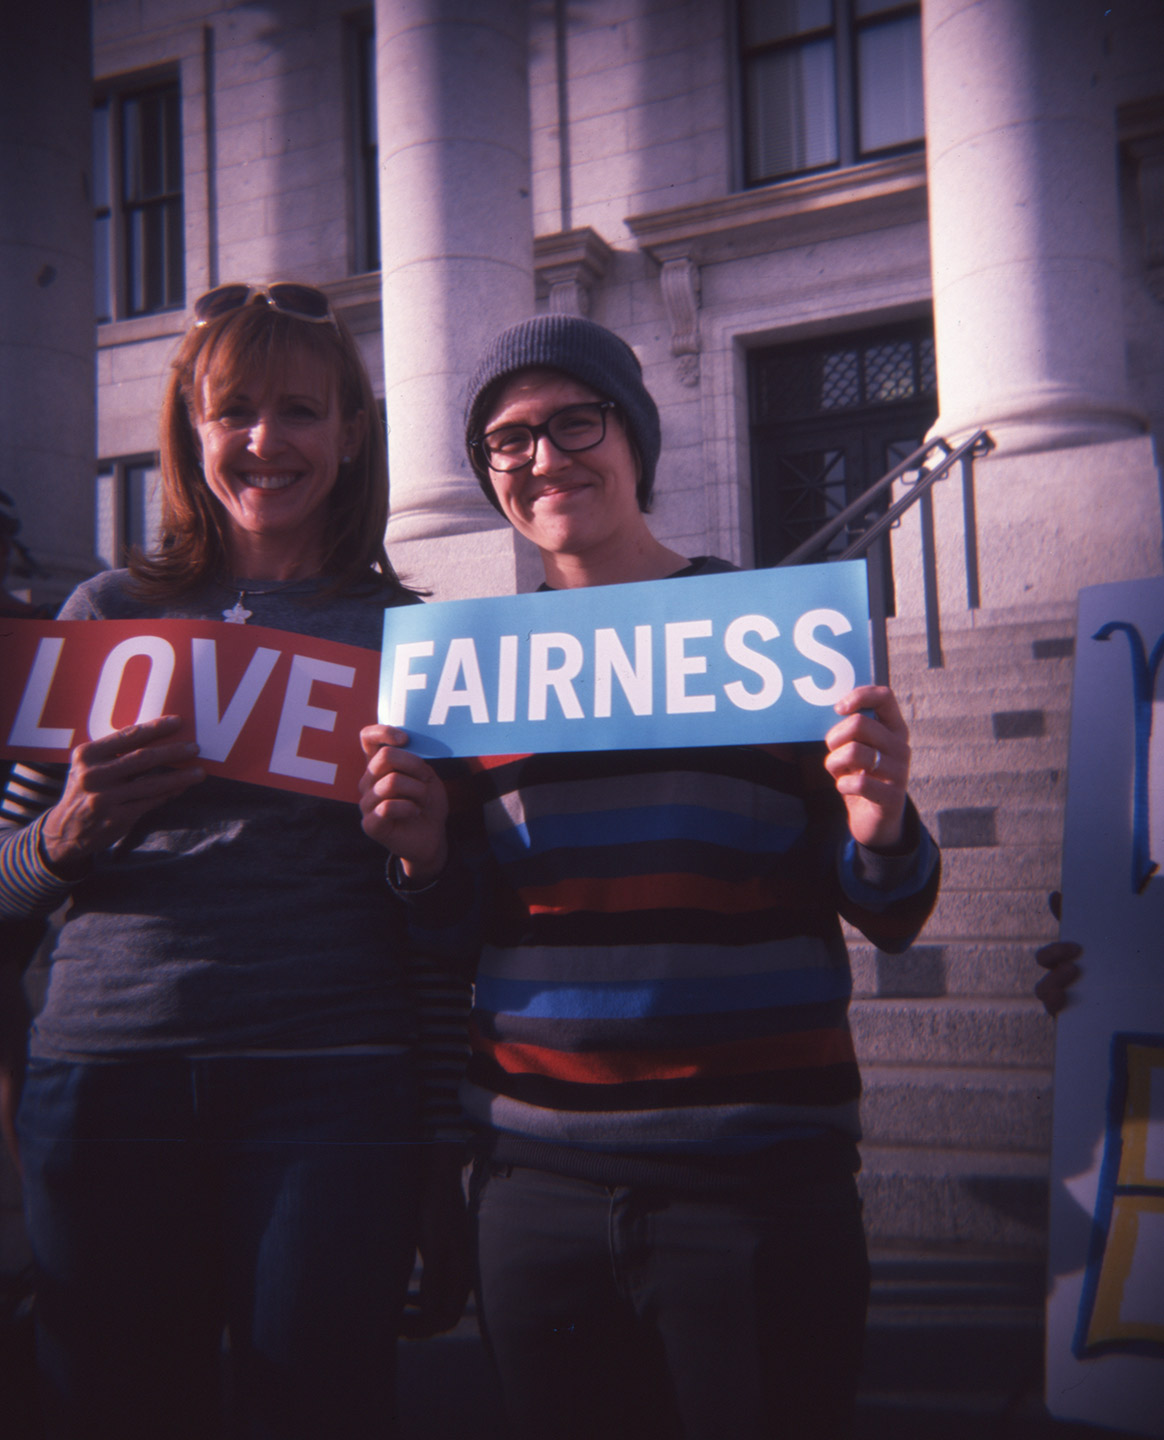 Supporting Love and Fairness at a Political Rally